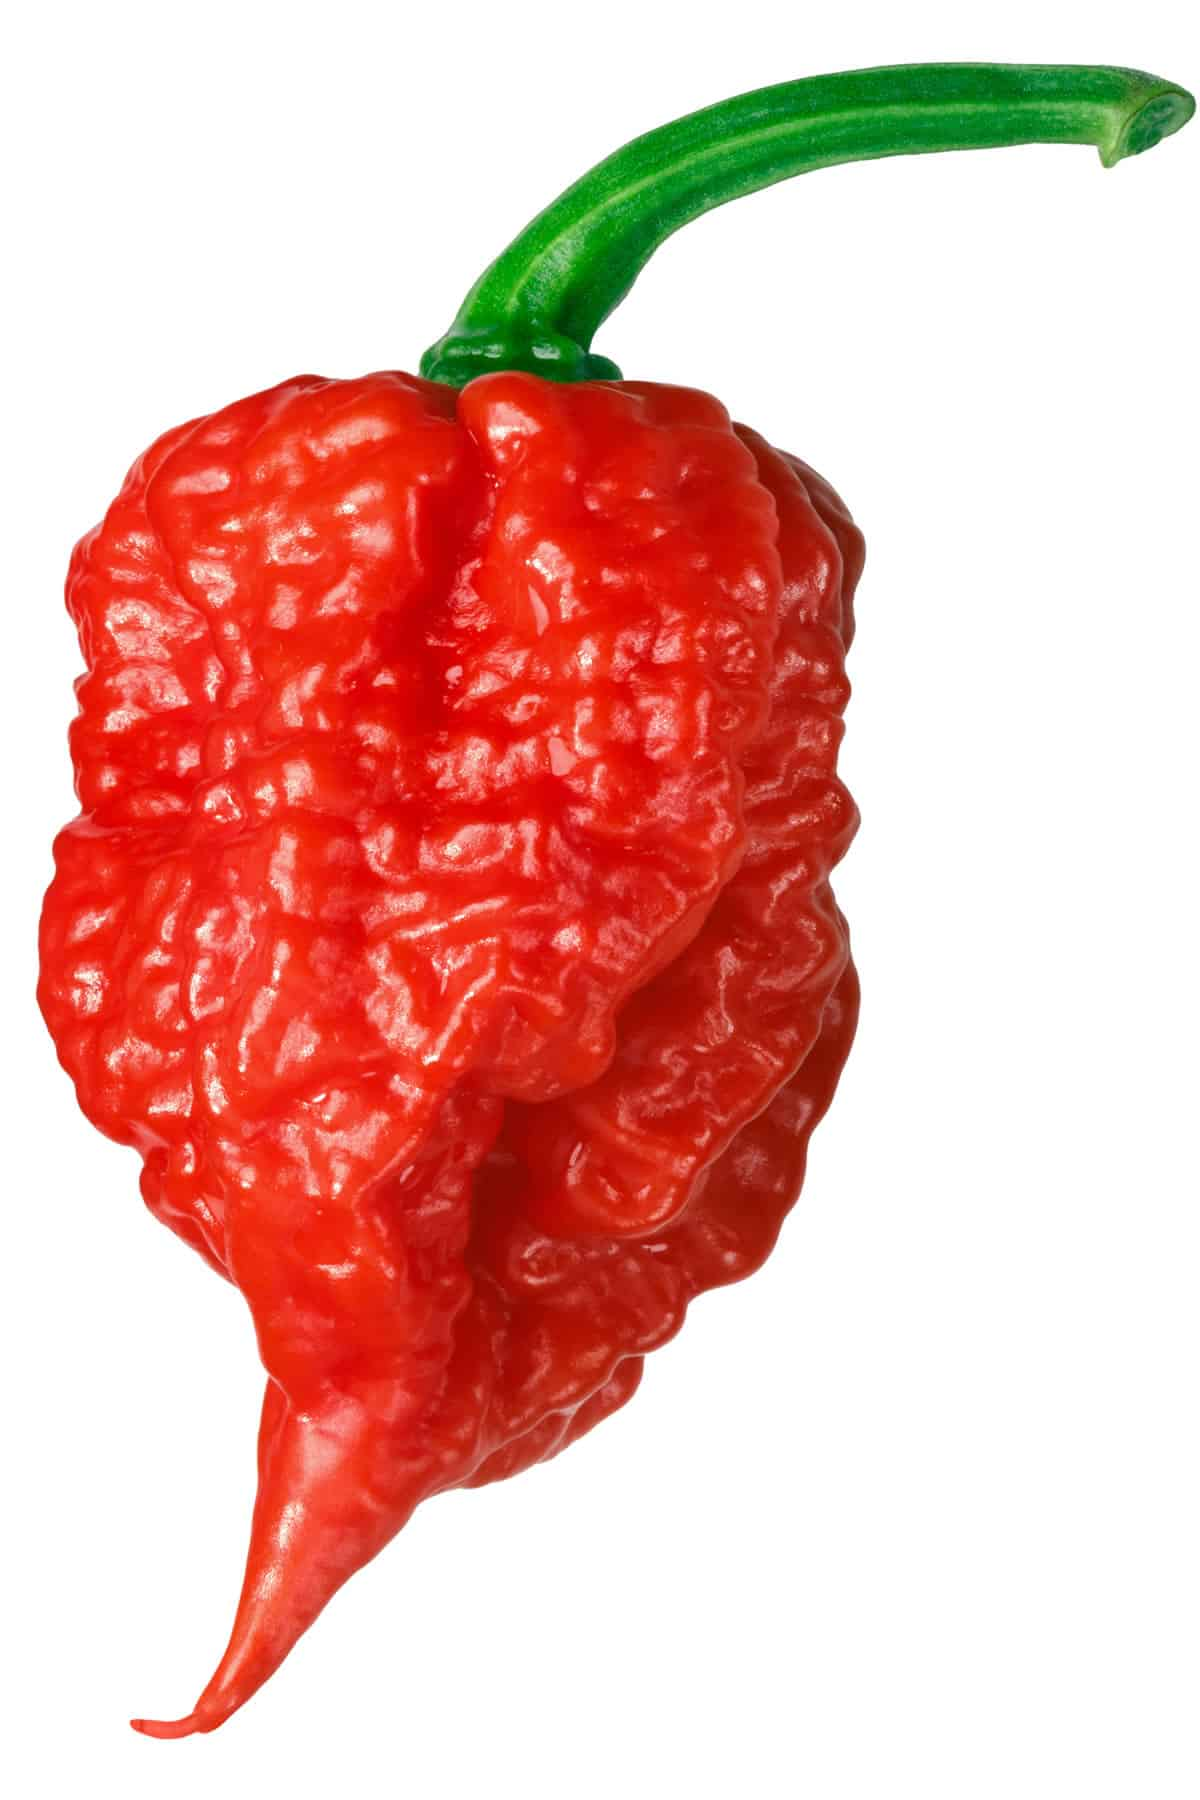 Carolina Reaper: Hottest Pepper in the World – All About It